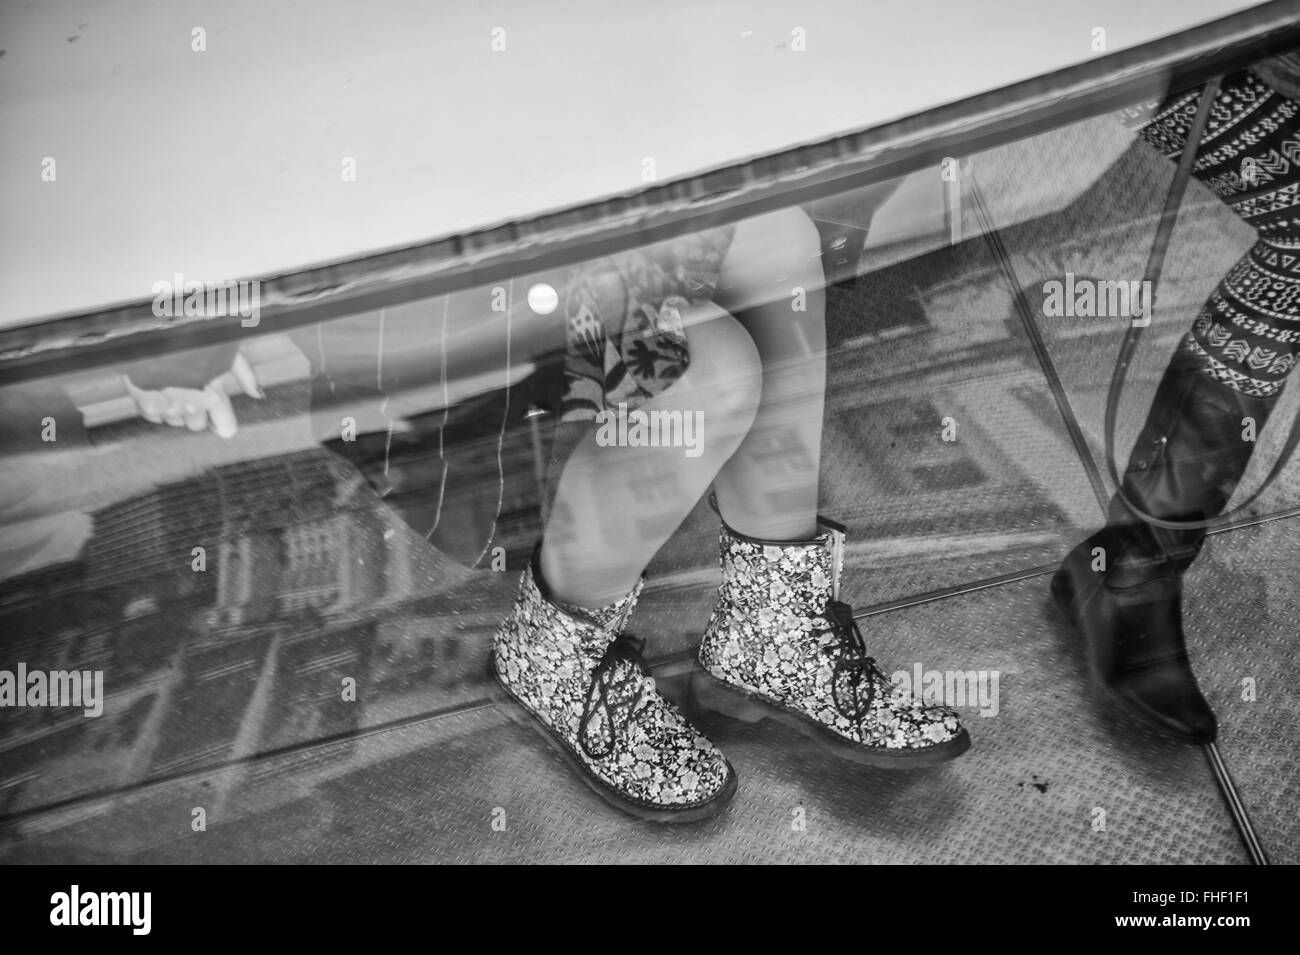 View through glass to peoples feet - Stock Image